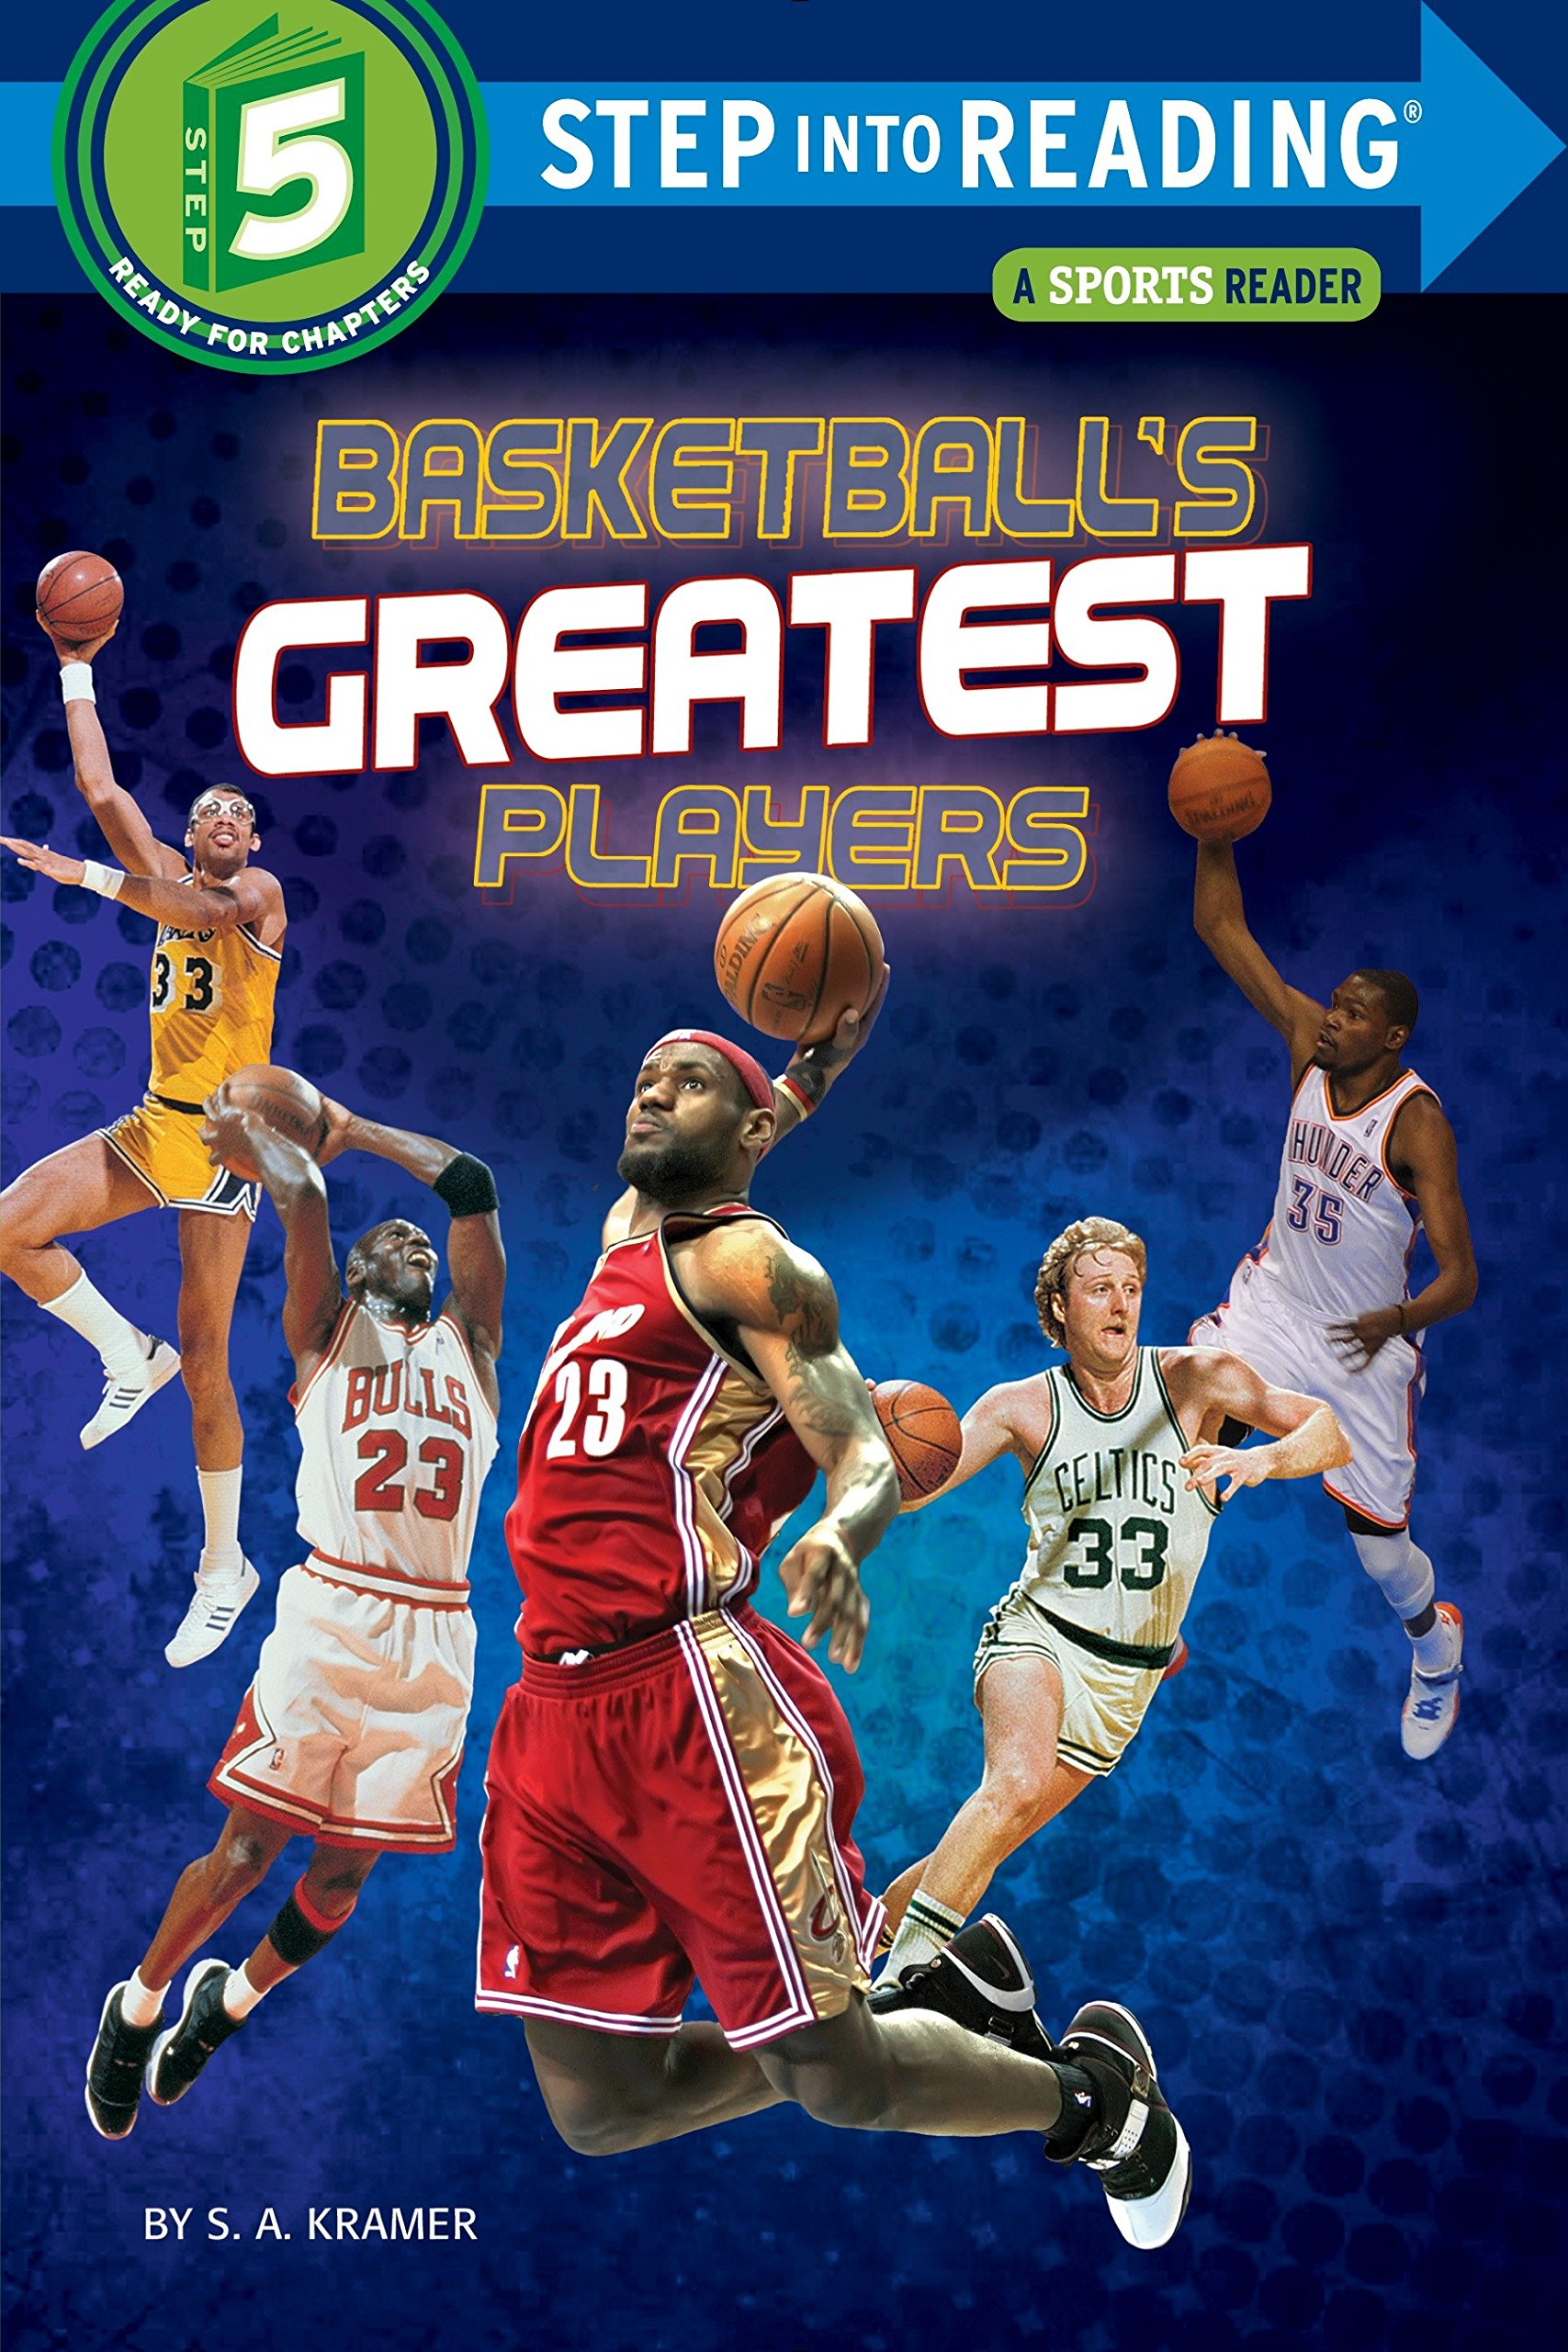 Basketball's Greatest Players (Step into Reading) Paperback – October 27, 2015 S. A. Kramer 0553533940 Readers - Intermediate Basketball players